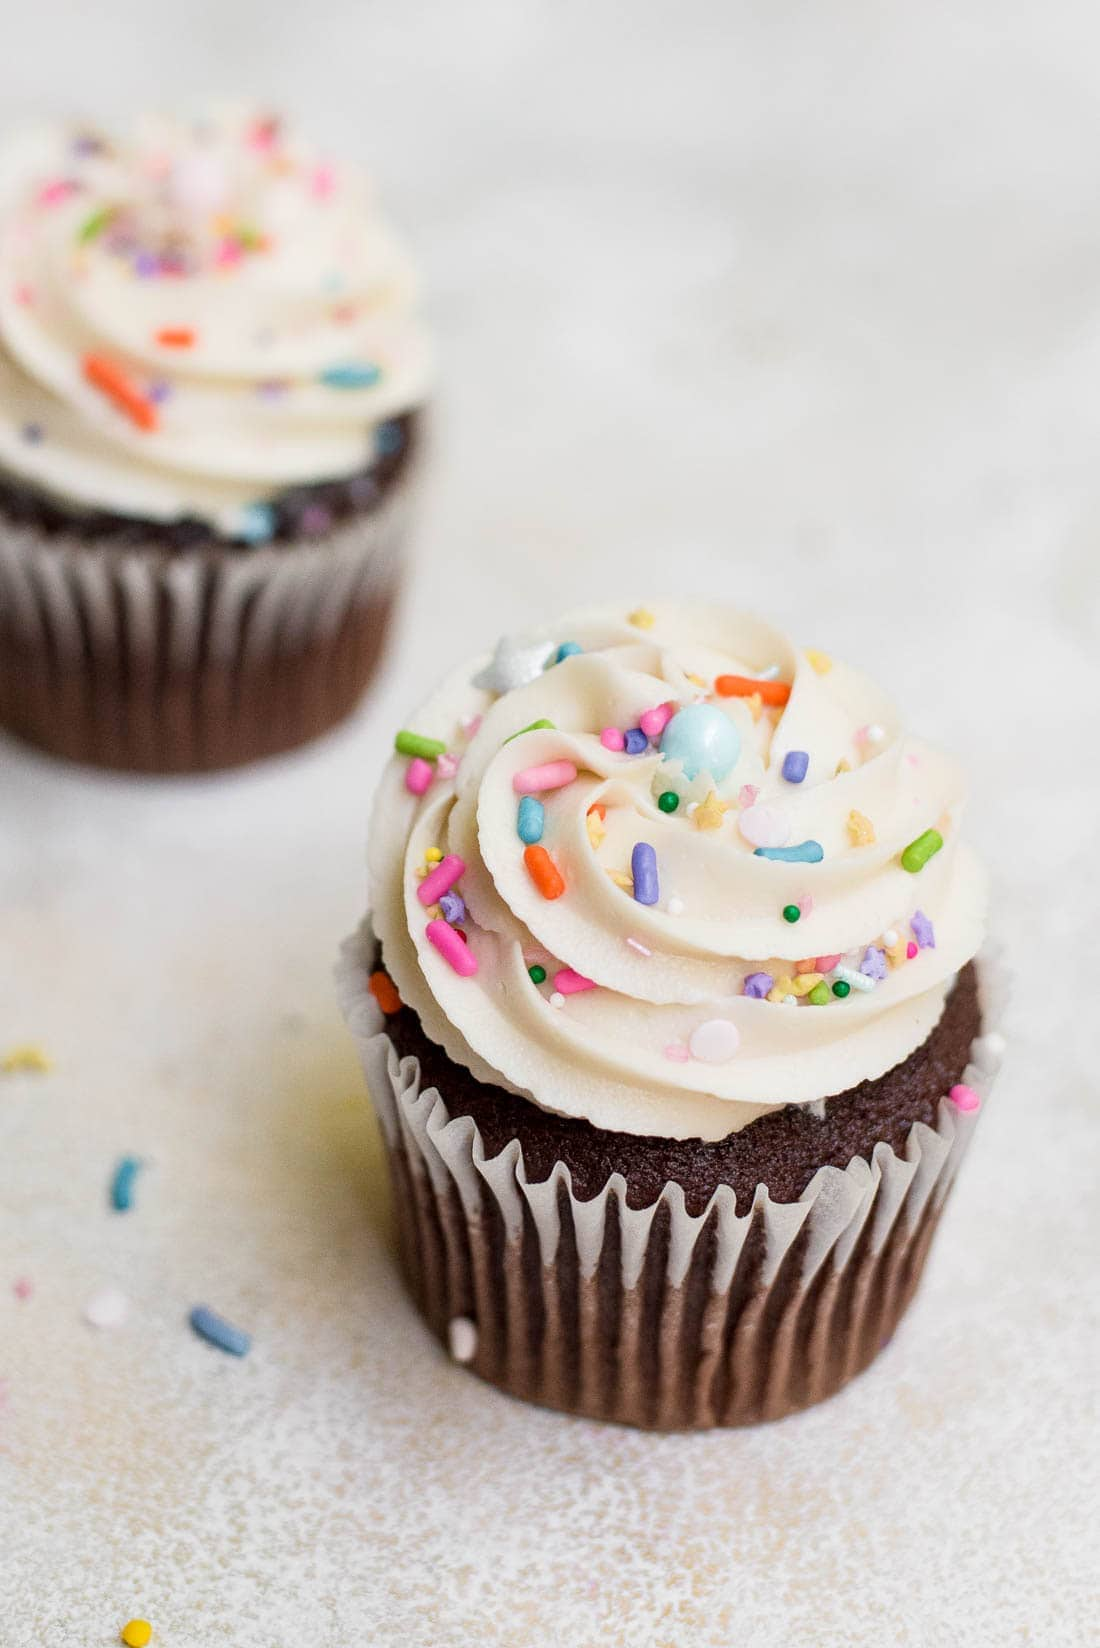 close up of cupcakes with frosting and sprinkles